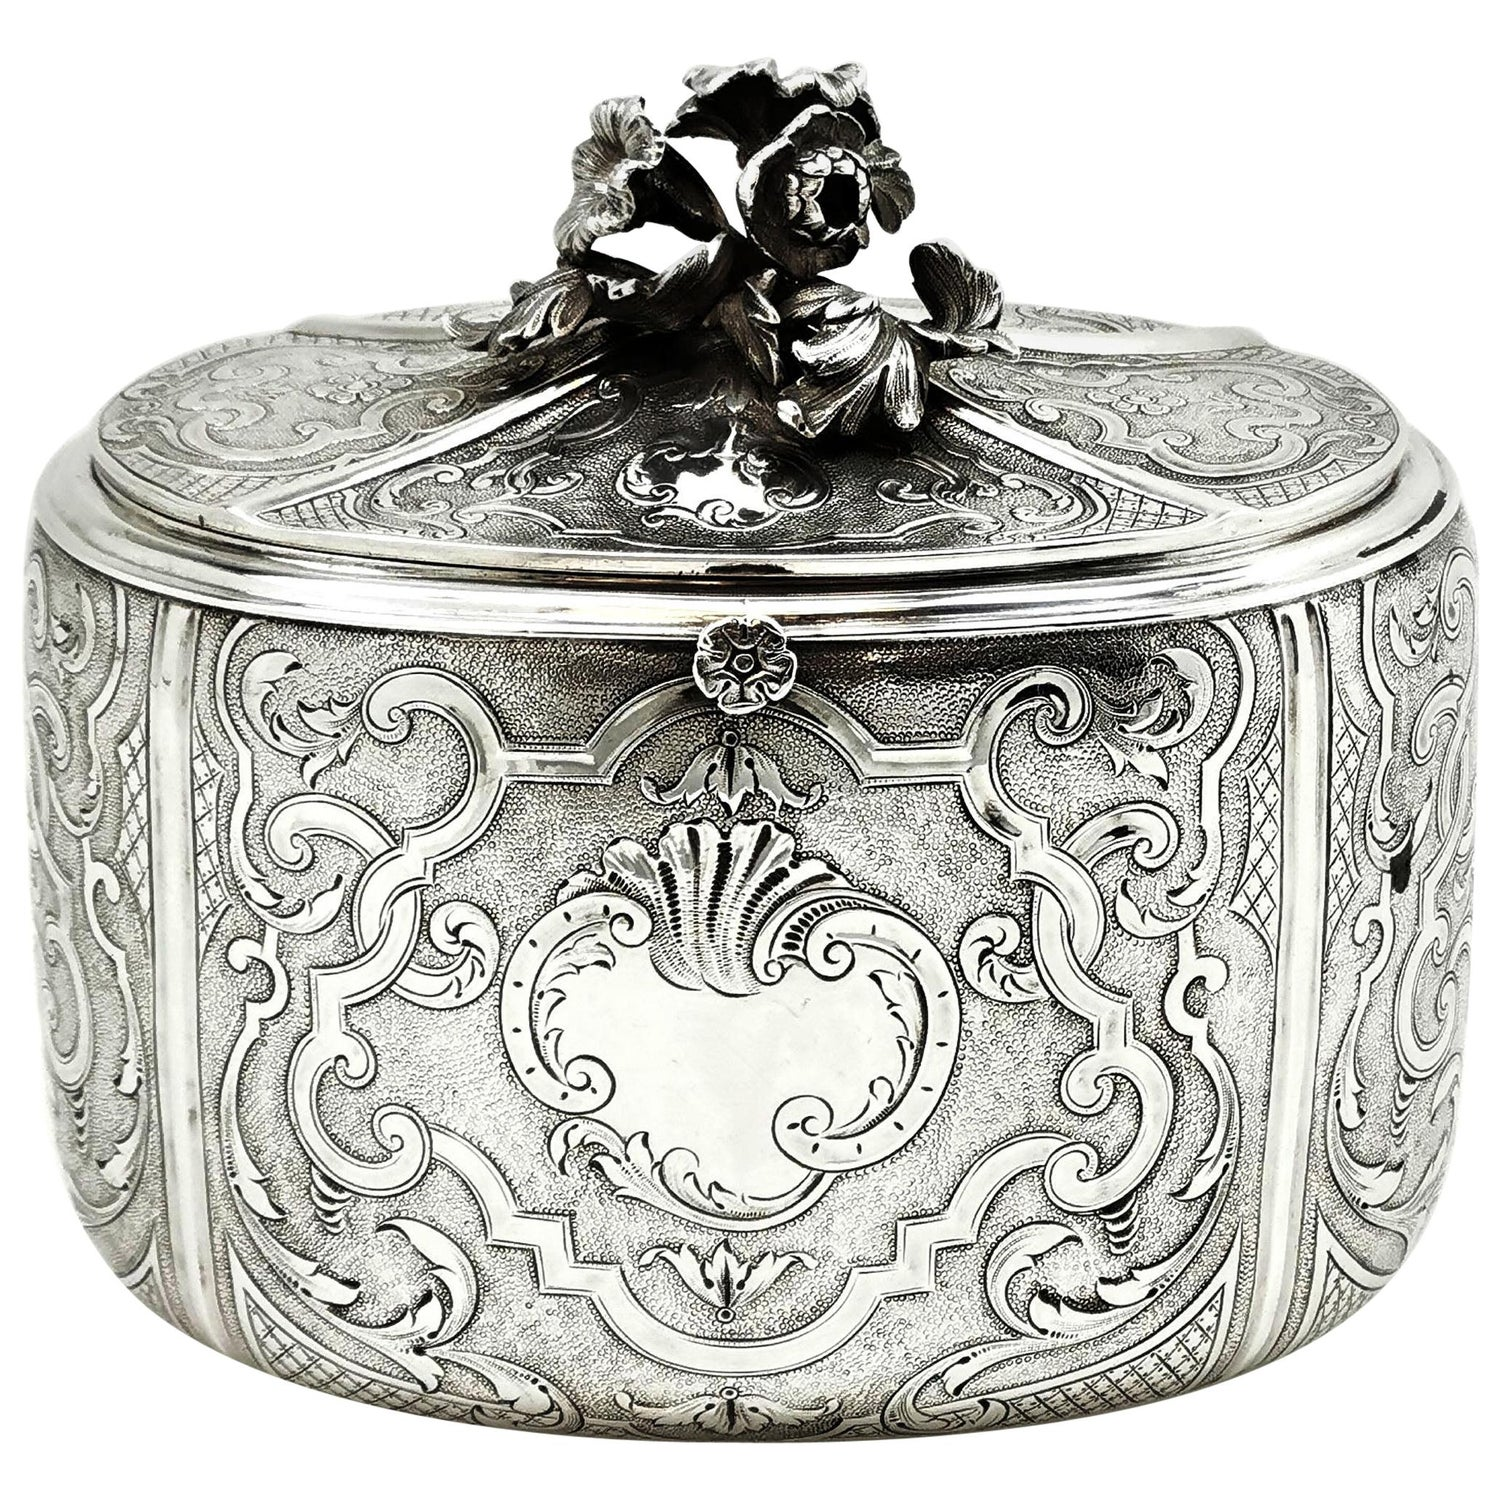 Antique French Solid Silver Tea Caddy by Odiot, Paris, circa 1880